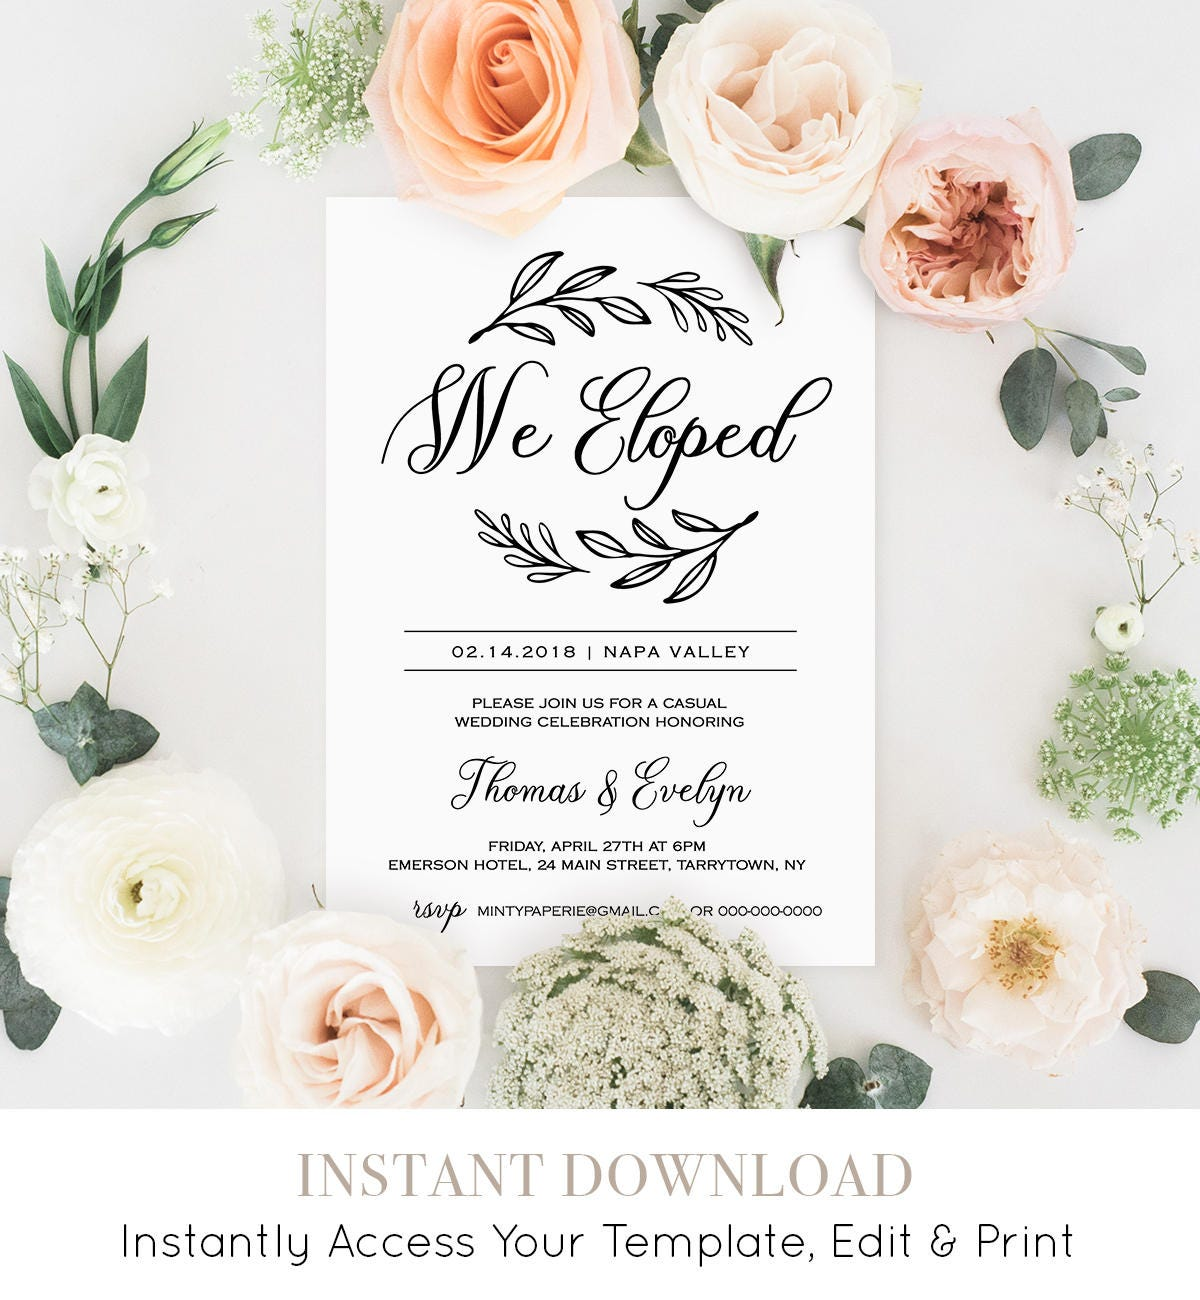 We eloped invitation template printable elopement announcement we eloped invitation template printable elopement announcement rustic wedding reception party instant download fully editable 027 107el monicamarmolfo Gallery